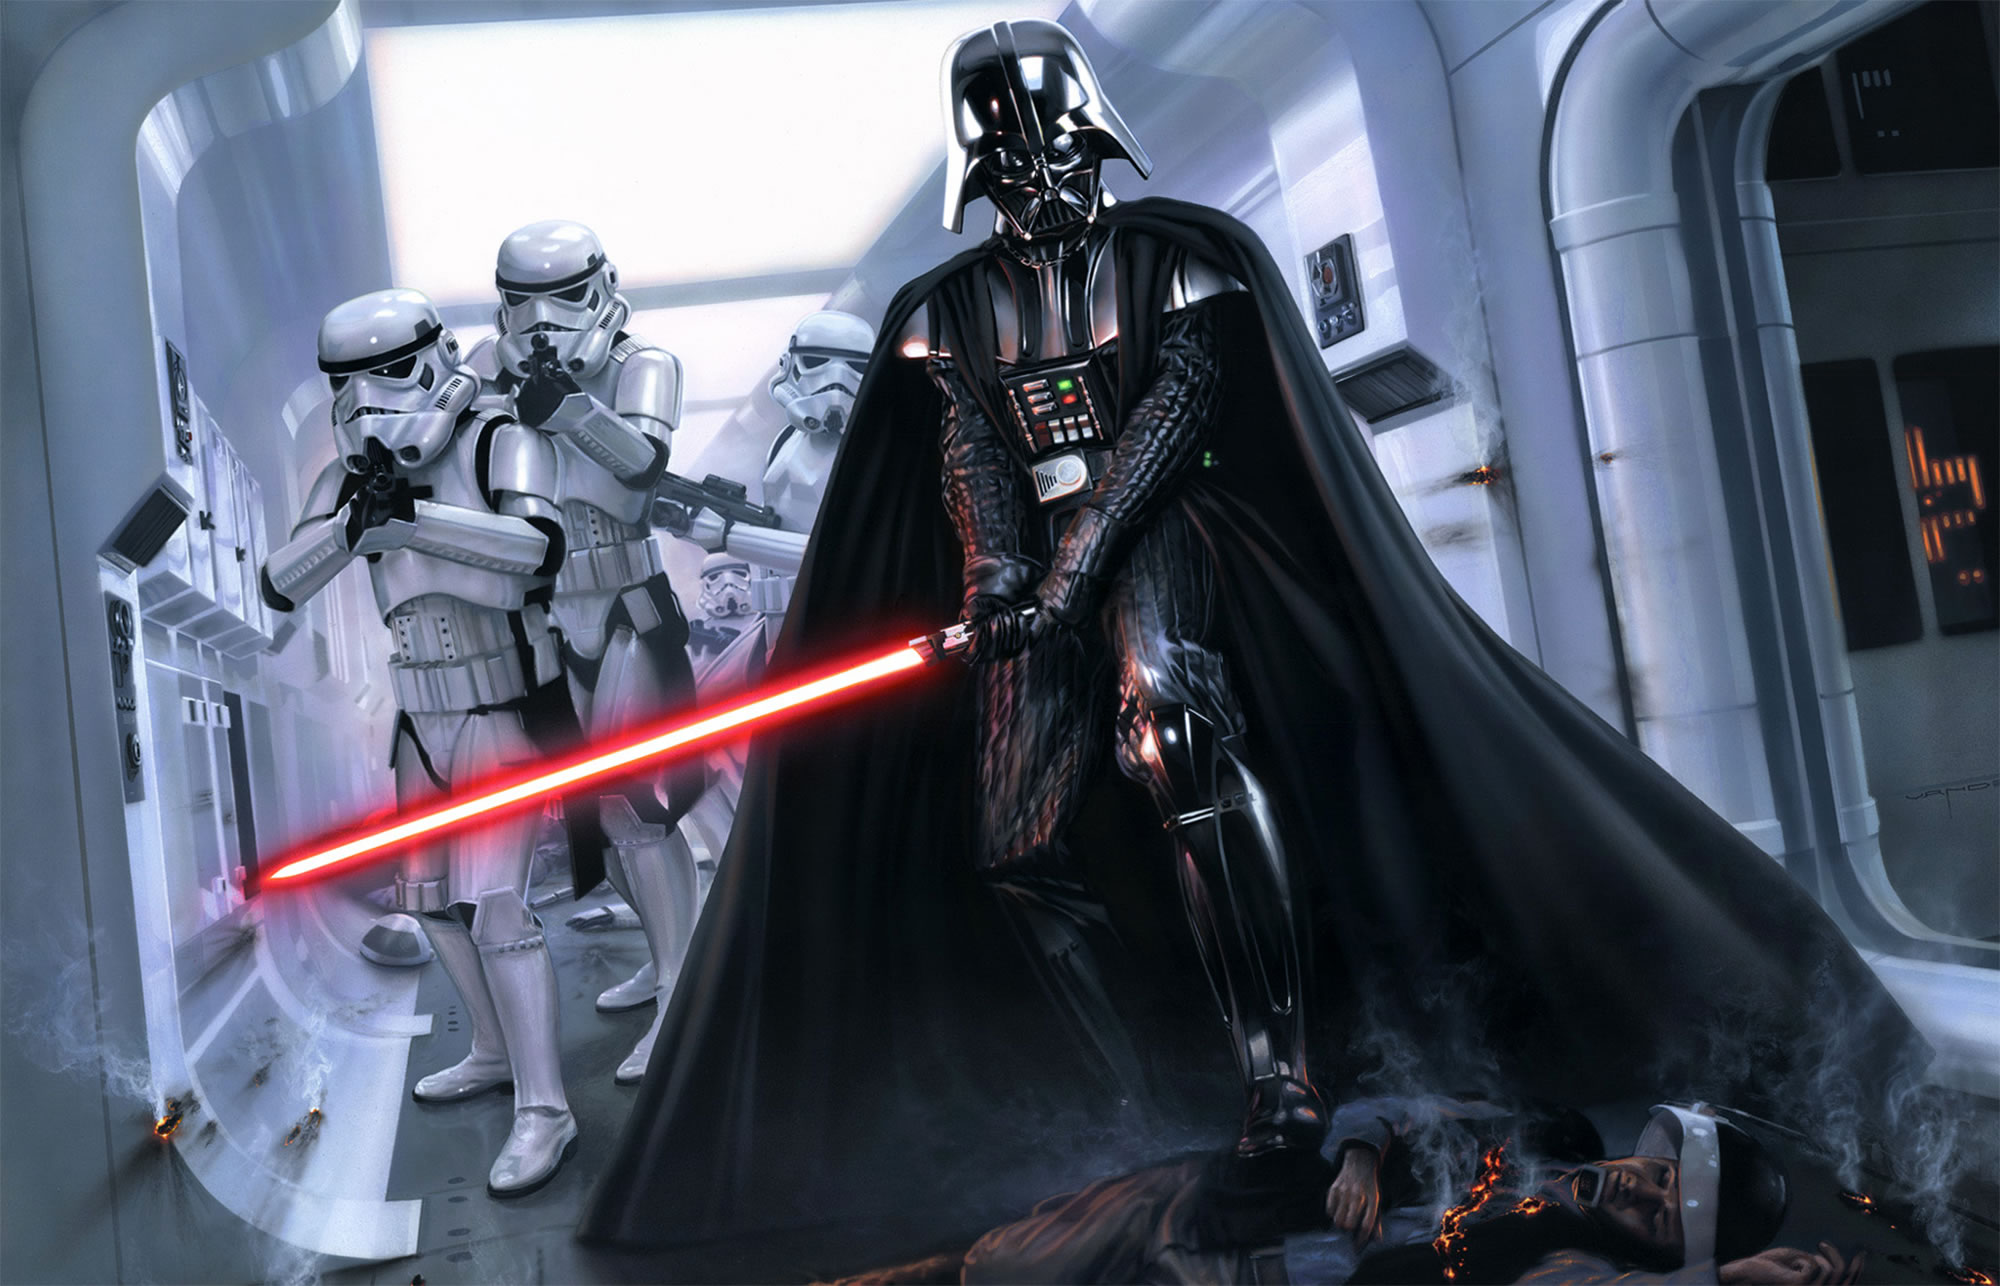 darth vader and stormtroopers entering spaceship